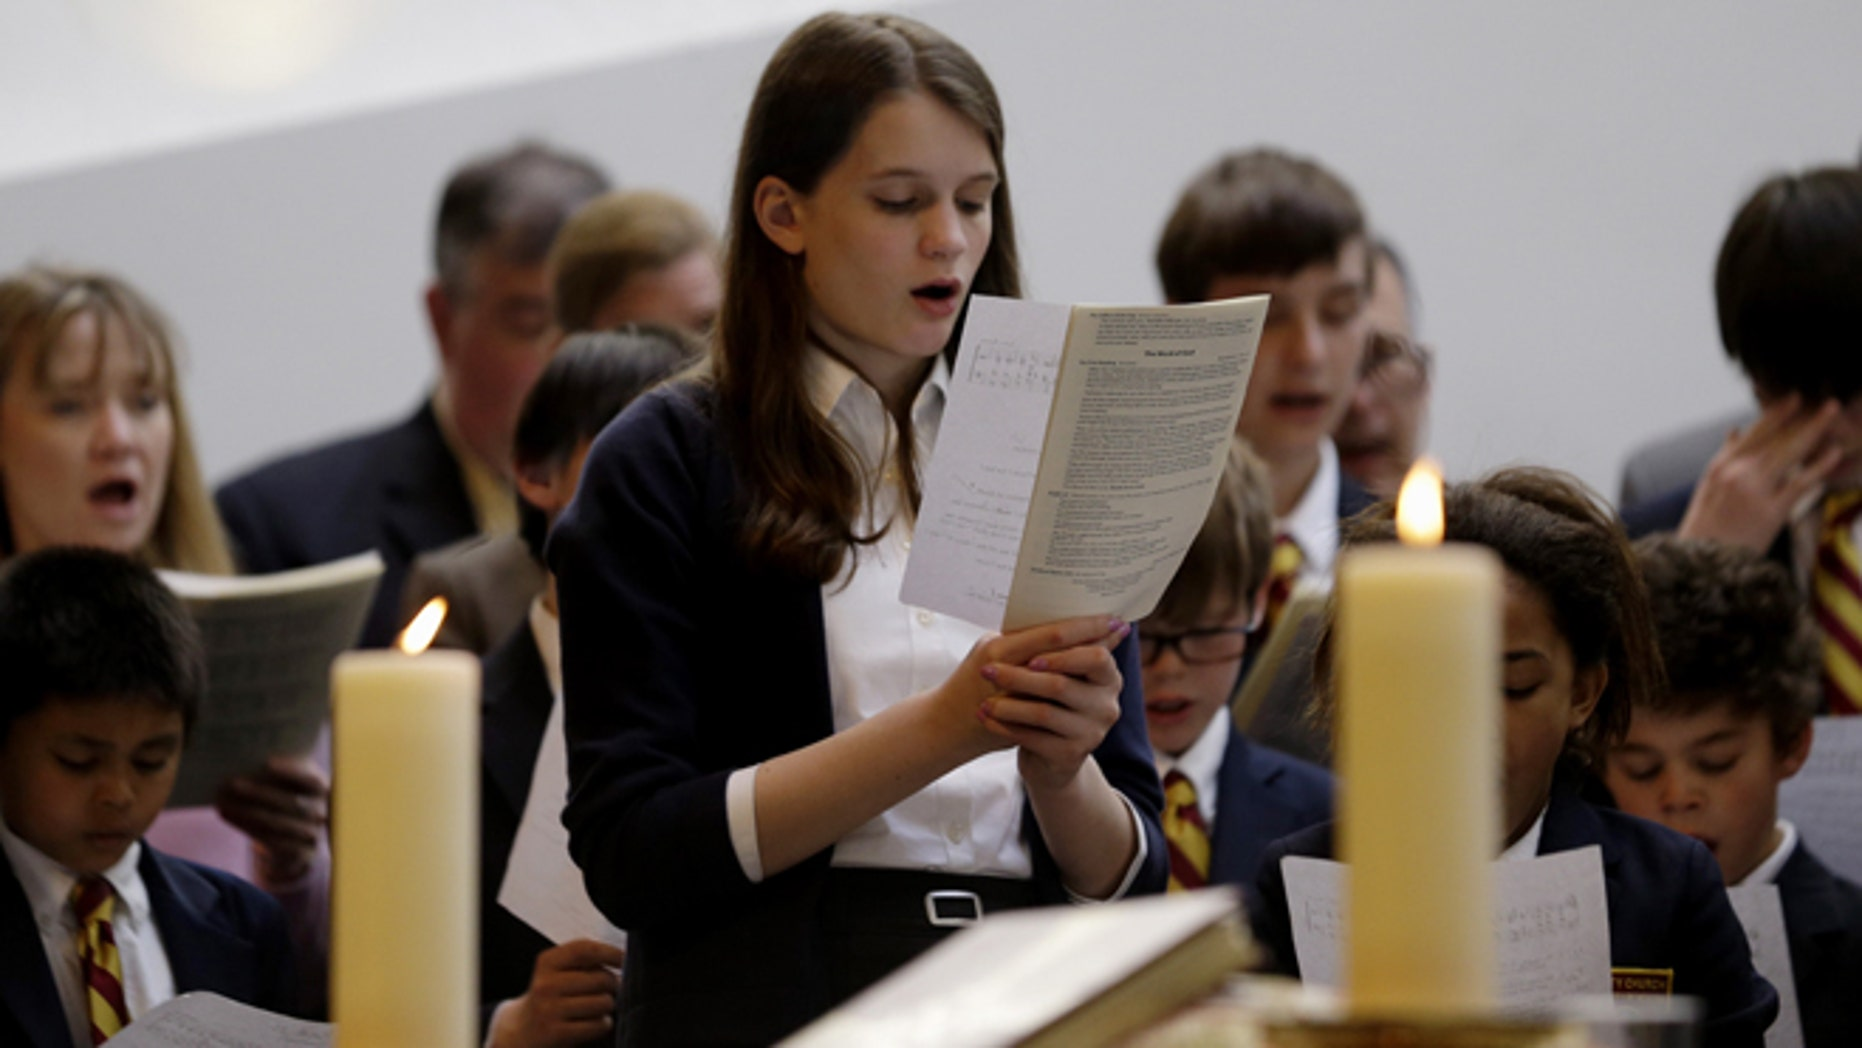 April 21, 2013: Annie Packard, 13, sings during Trinity Episcopal Church Sunday service at Temple Israel, which allowed the Trinity congregation hold service in Boston. Trinity is within the blocked-off area near the finish line of the Boston Marathon, where earlier in the week two bombs exploded. Packard was in the grandstands when the first bomb exploded and ran away in the direction of the second bomb, which went off 10 seconds later.